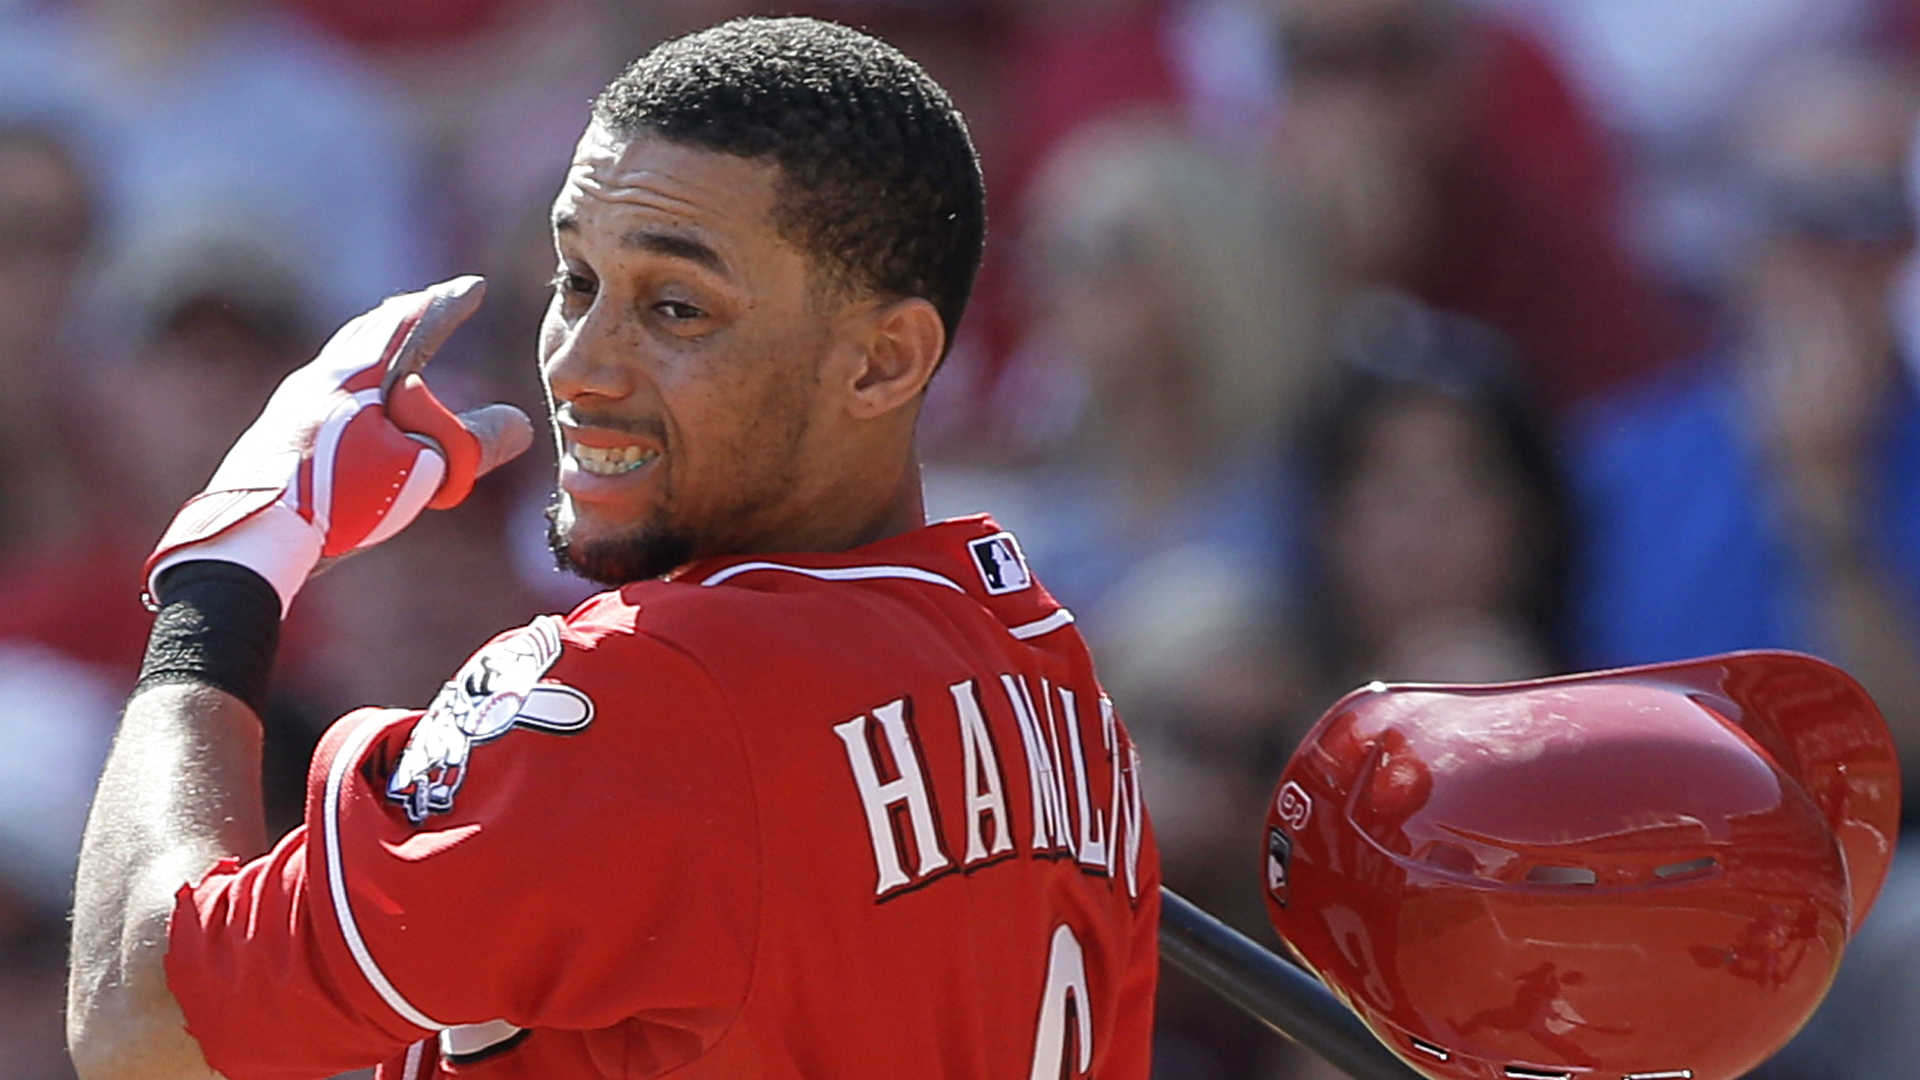 Billy-Hamilton-021114-AP-FTR